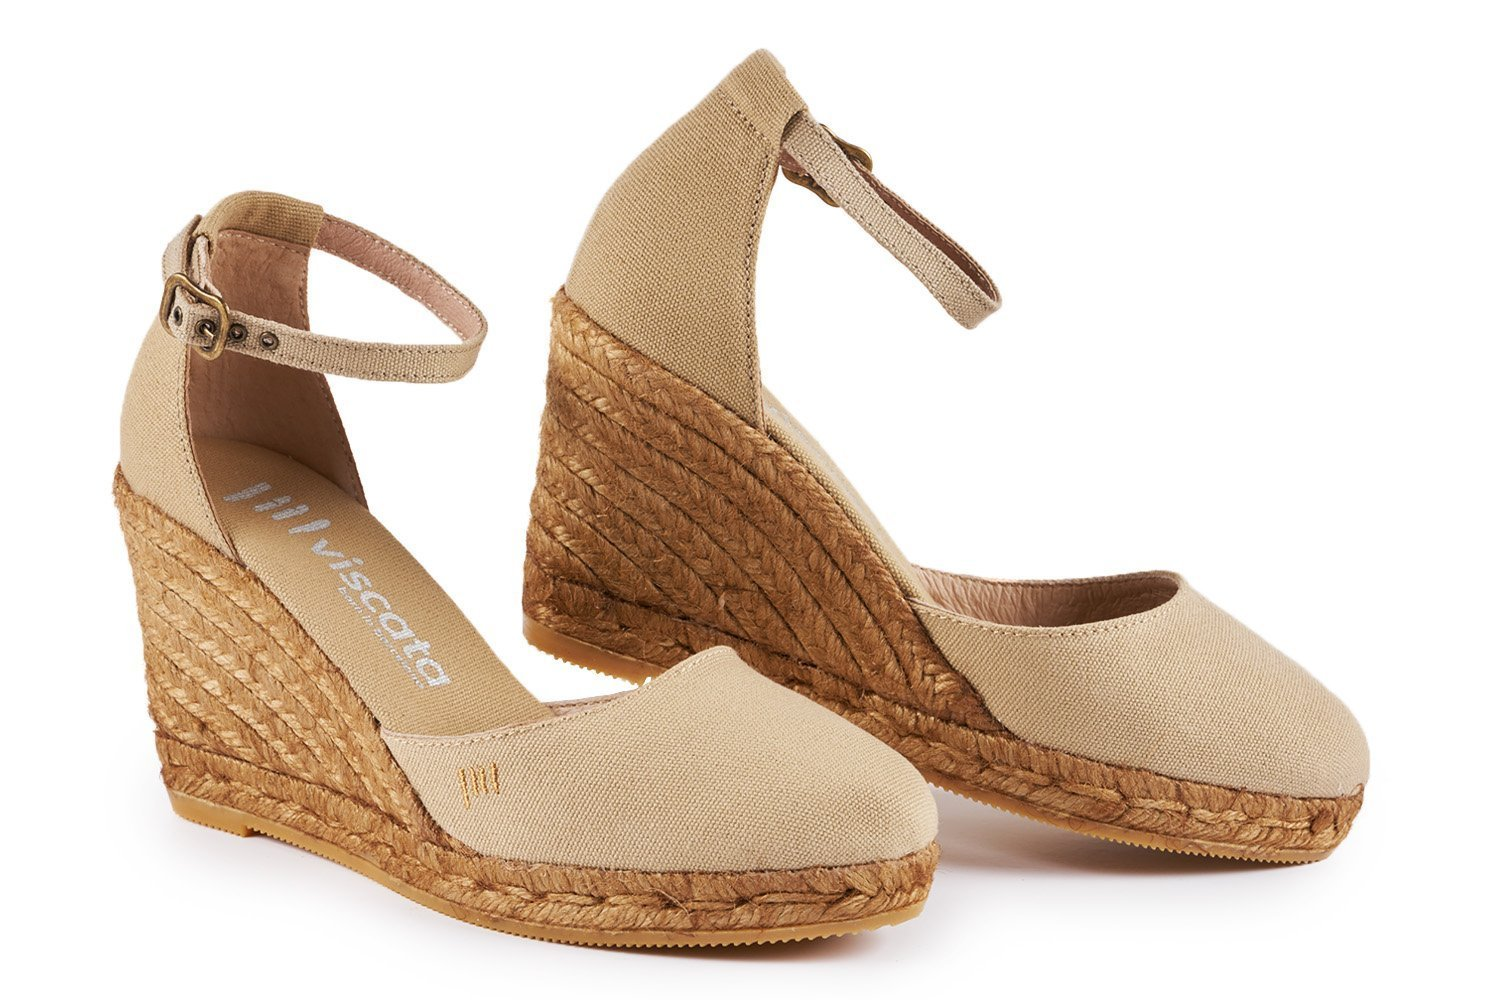 VISCATA in Estartit Elegant Elegant Comfort, Canvas, B07CTJX6L4 Ankle-Strap, Closed Toe, Espadrilles with 3-inch Heel Made in Spain Beige 433e04b - fast-weightloss-diet.space